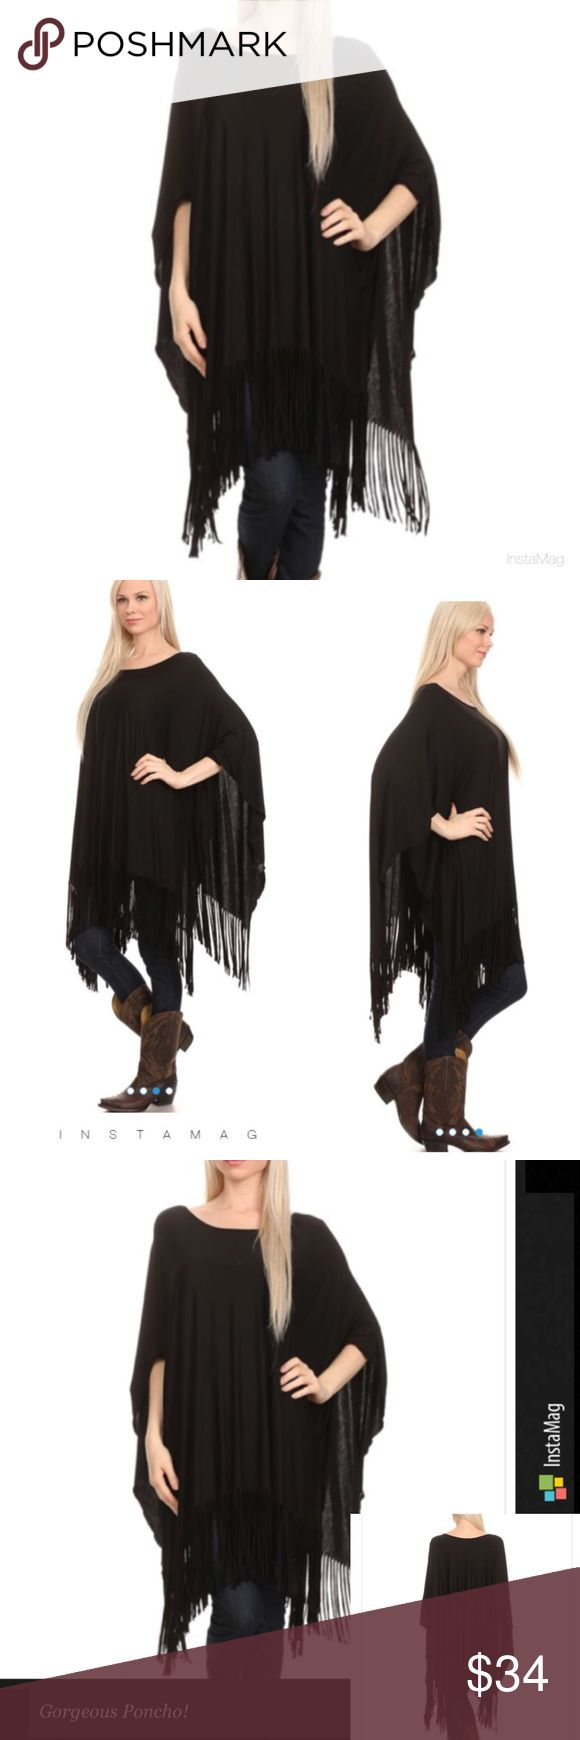 FRINGE BLOUSE PONCHO This solid black fringe poncho is so trendy and easy to wear. Goes with everything! Polyester/rayon blend, very soft. Measurements upon request. One size fits most. tla2 Tops Tunics